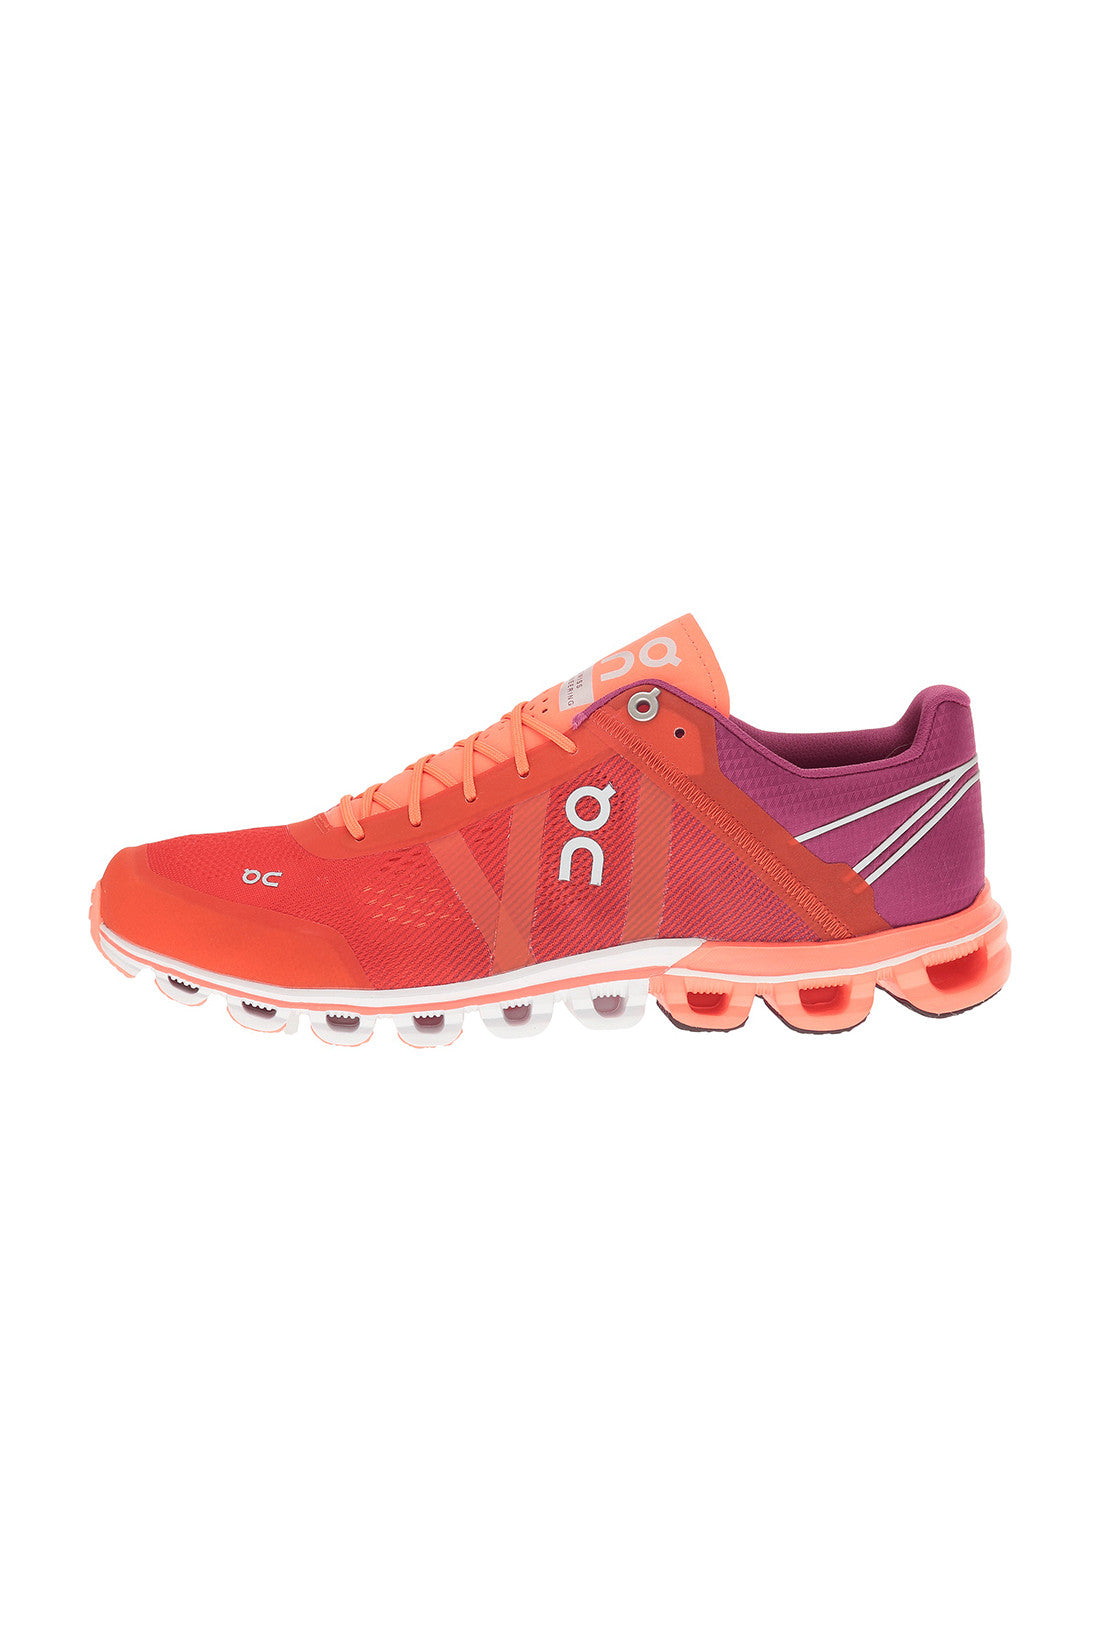 Women's Cloudflow Running Shoe - Spice Flash